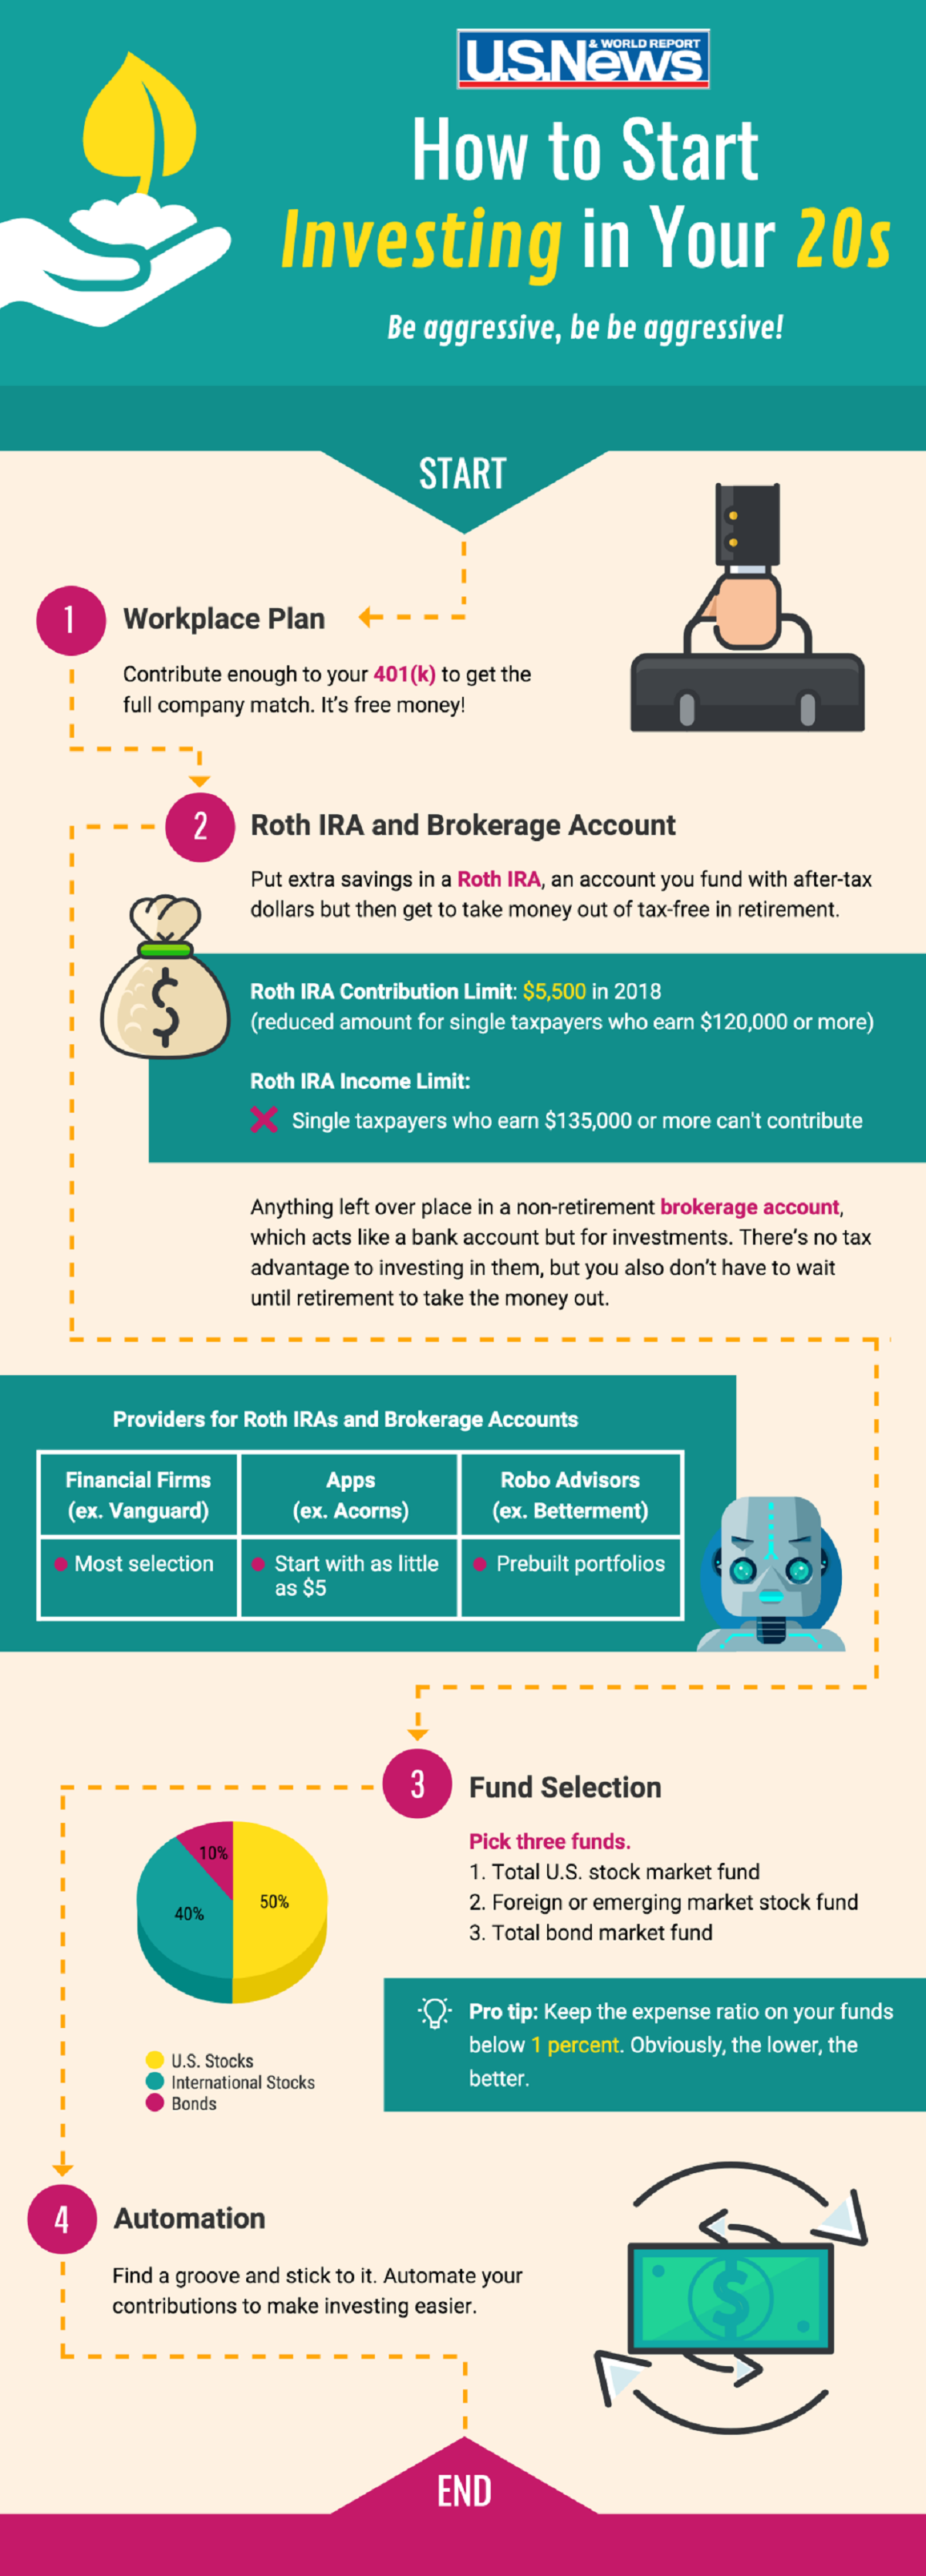 how-to-start-investing-in-your-20s-infographic